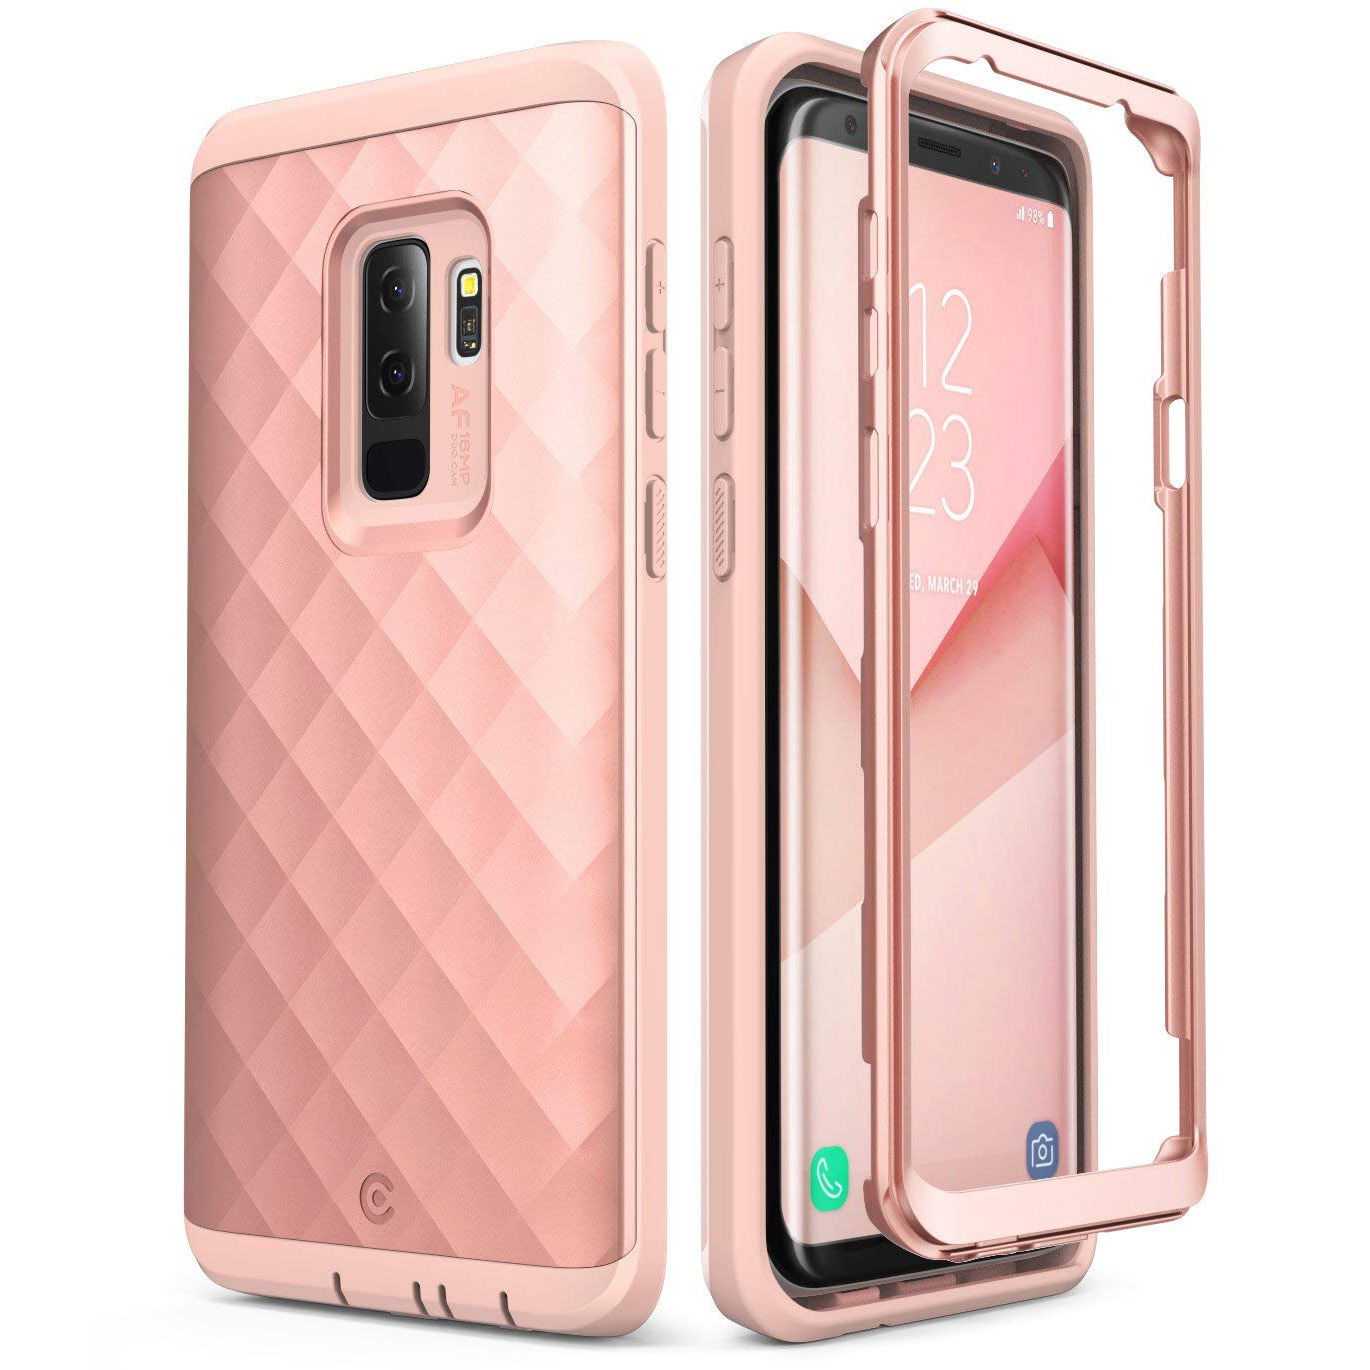 Etui pancerne Supcase Clayco Hera do Galaxy S9 Plus